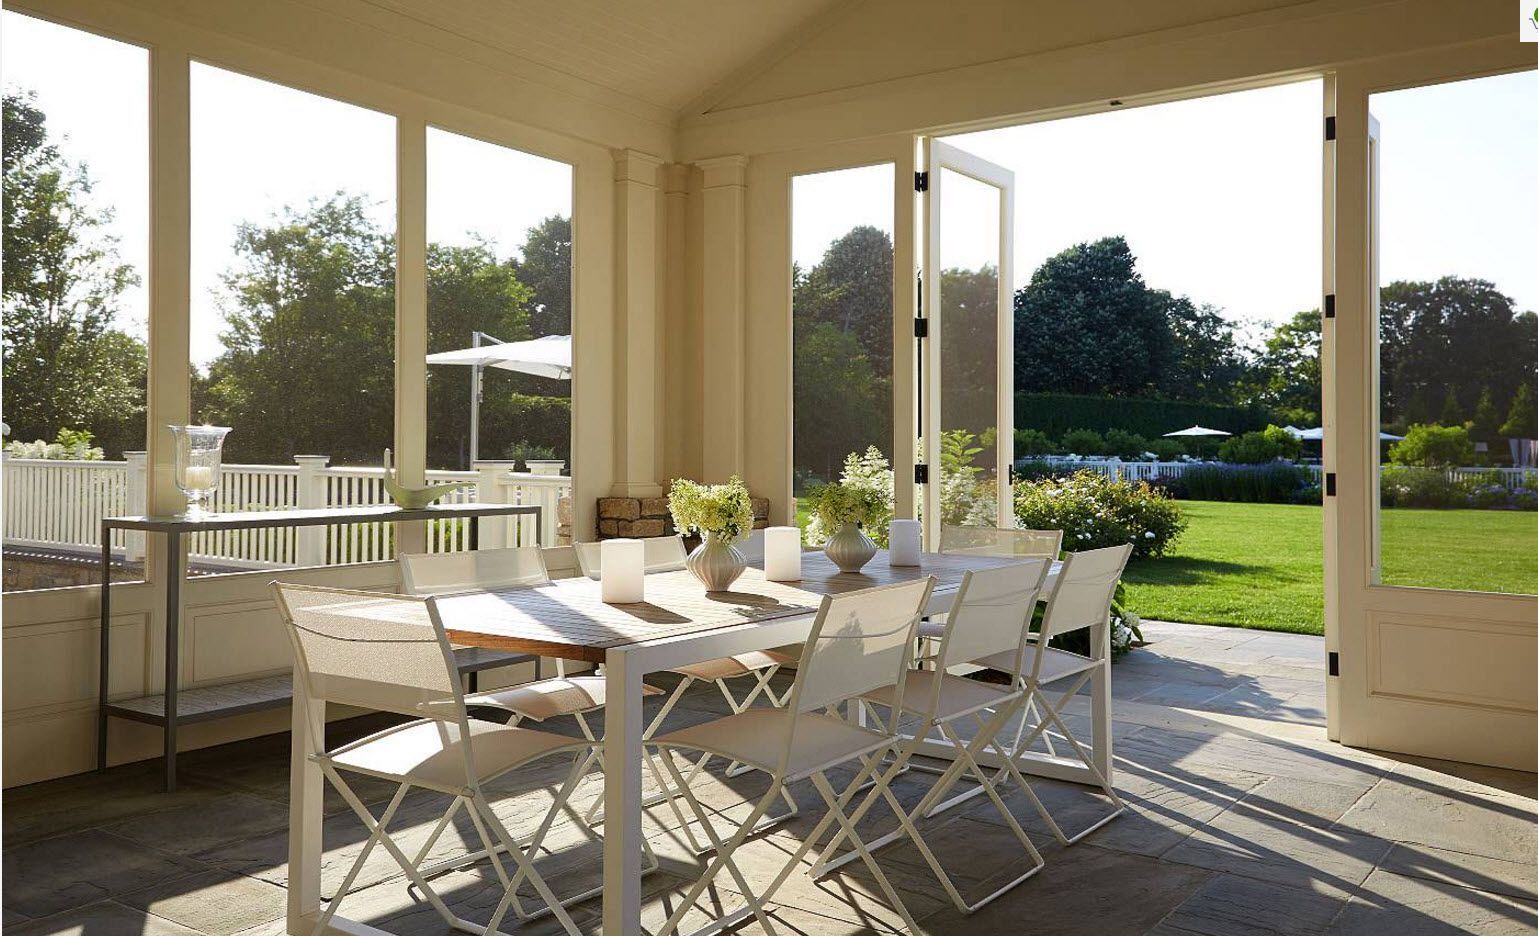 Nice open design for the porch terrace with large table and chairs to take parties